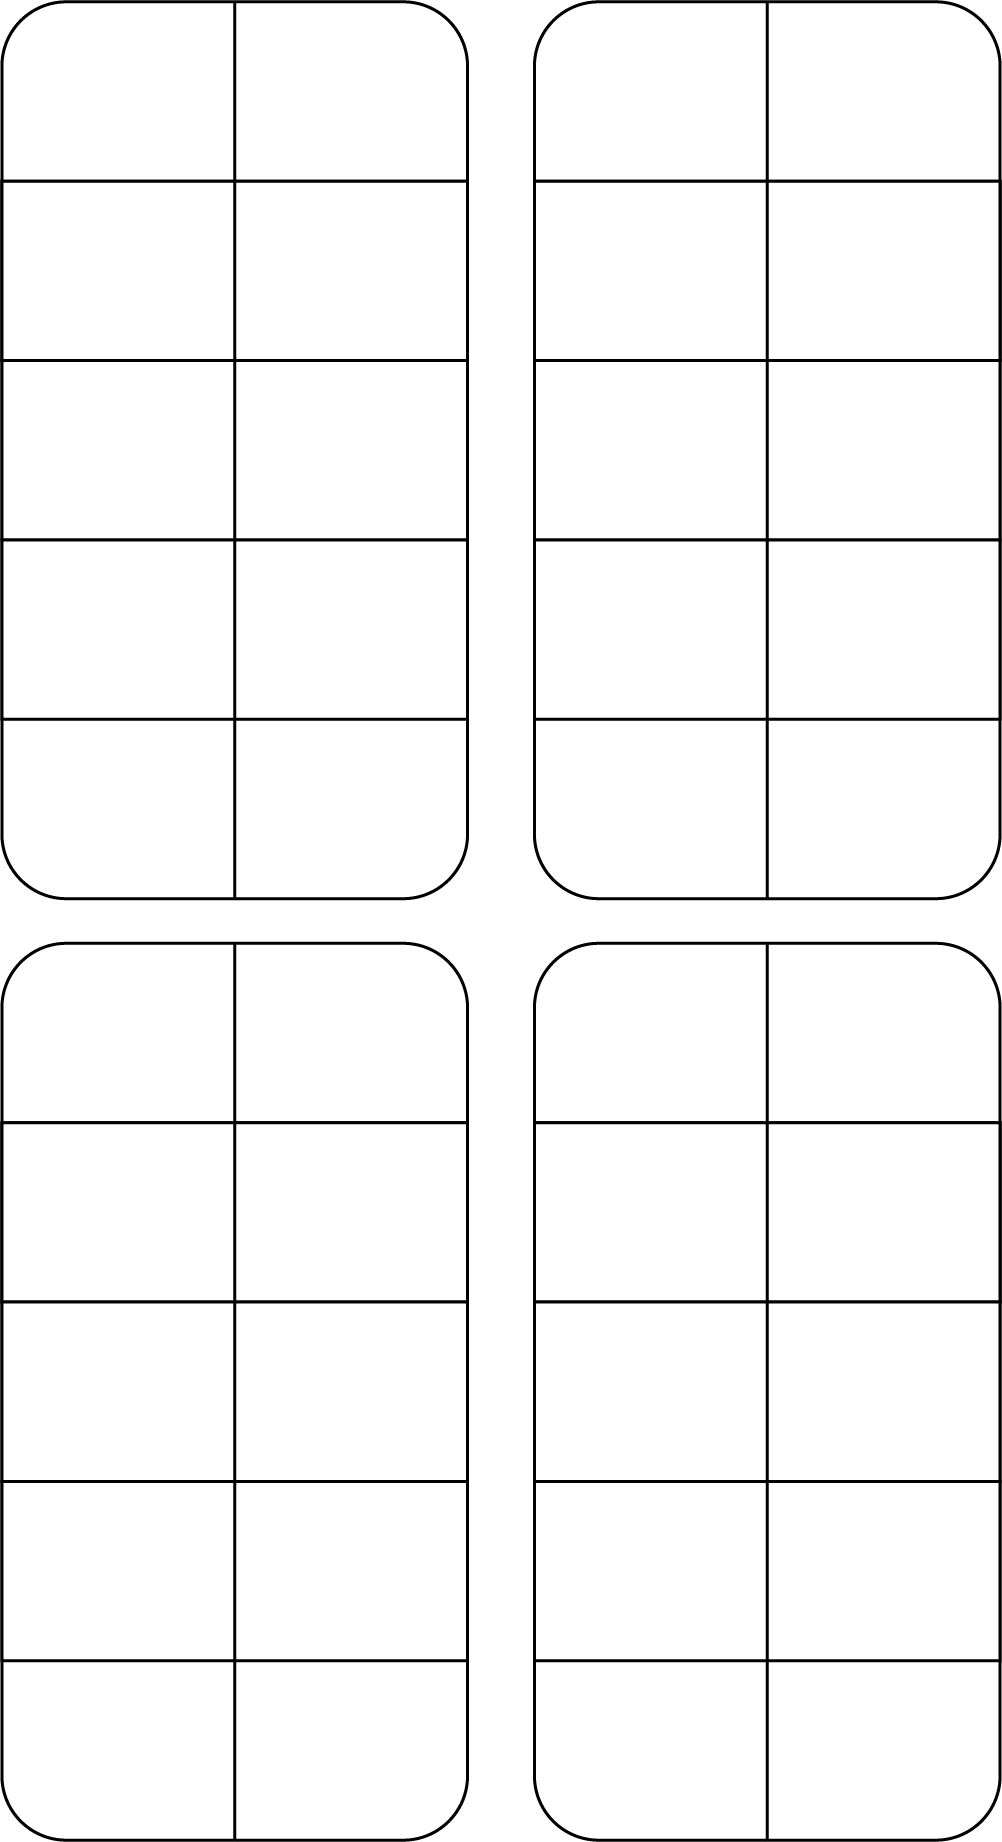 Post_blank Double Ten Frame Printable_317918 on Blank Ten Frame Template Printable